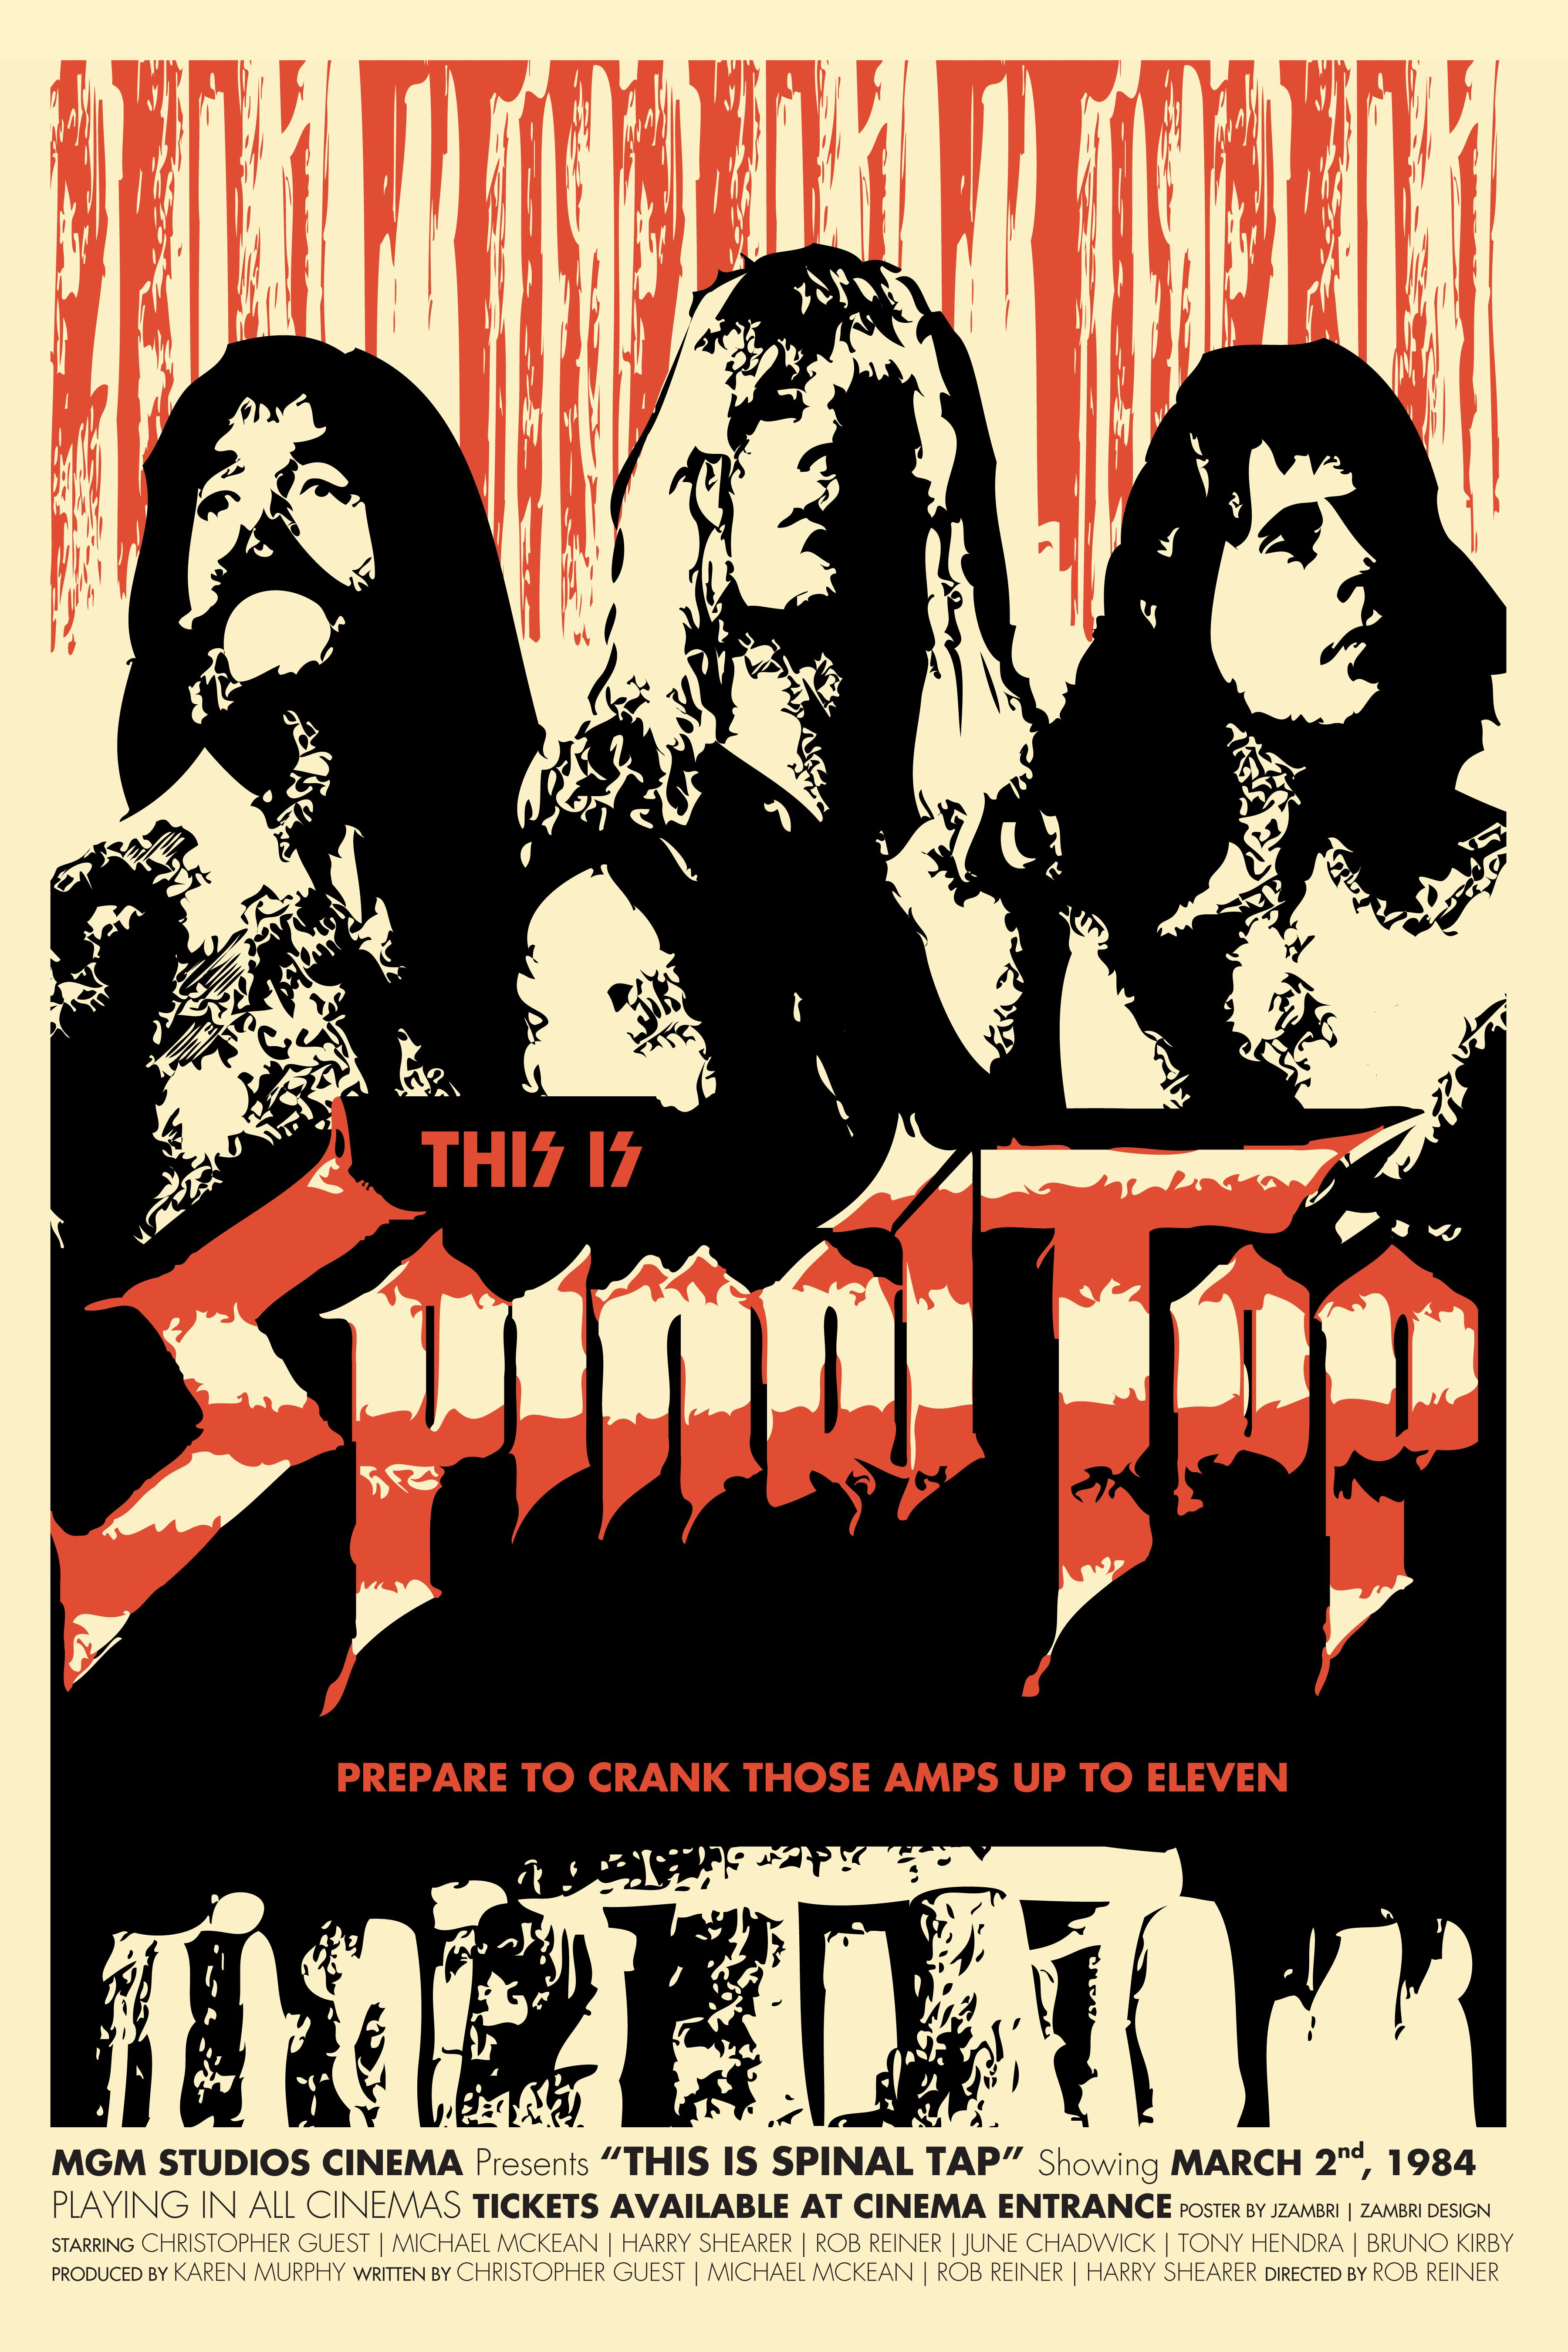 this is spinal tap movie poster movies tv that raised me movie posters film posters poster. Black Bedroom Furniture Sets. Home Design Ideas